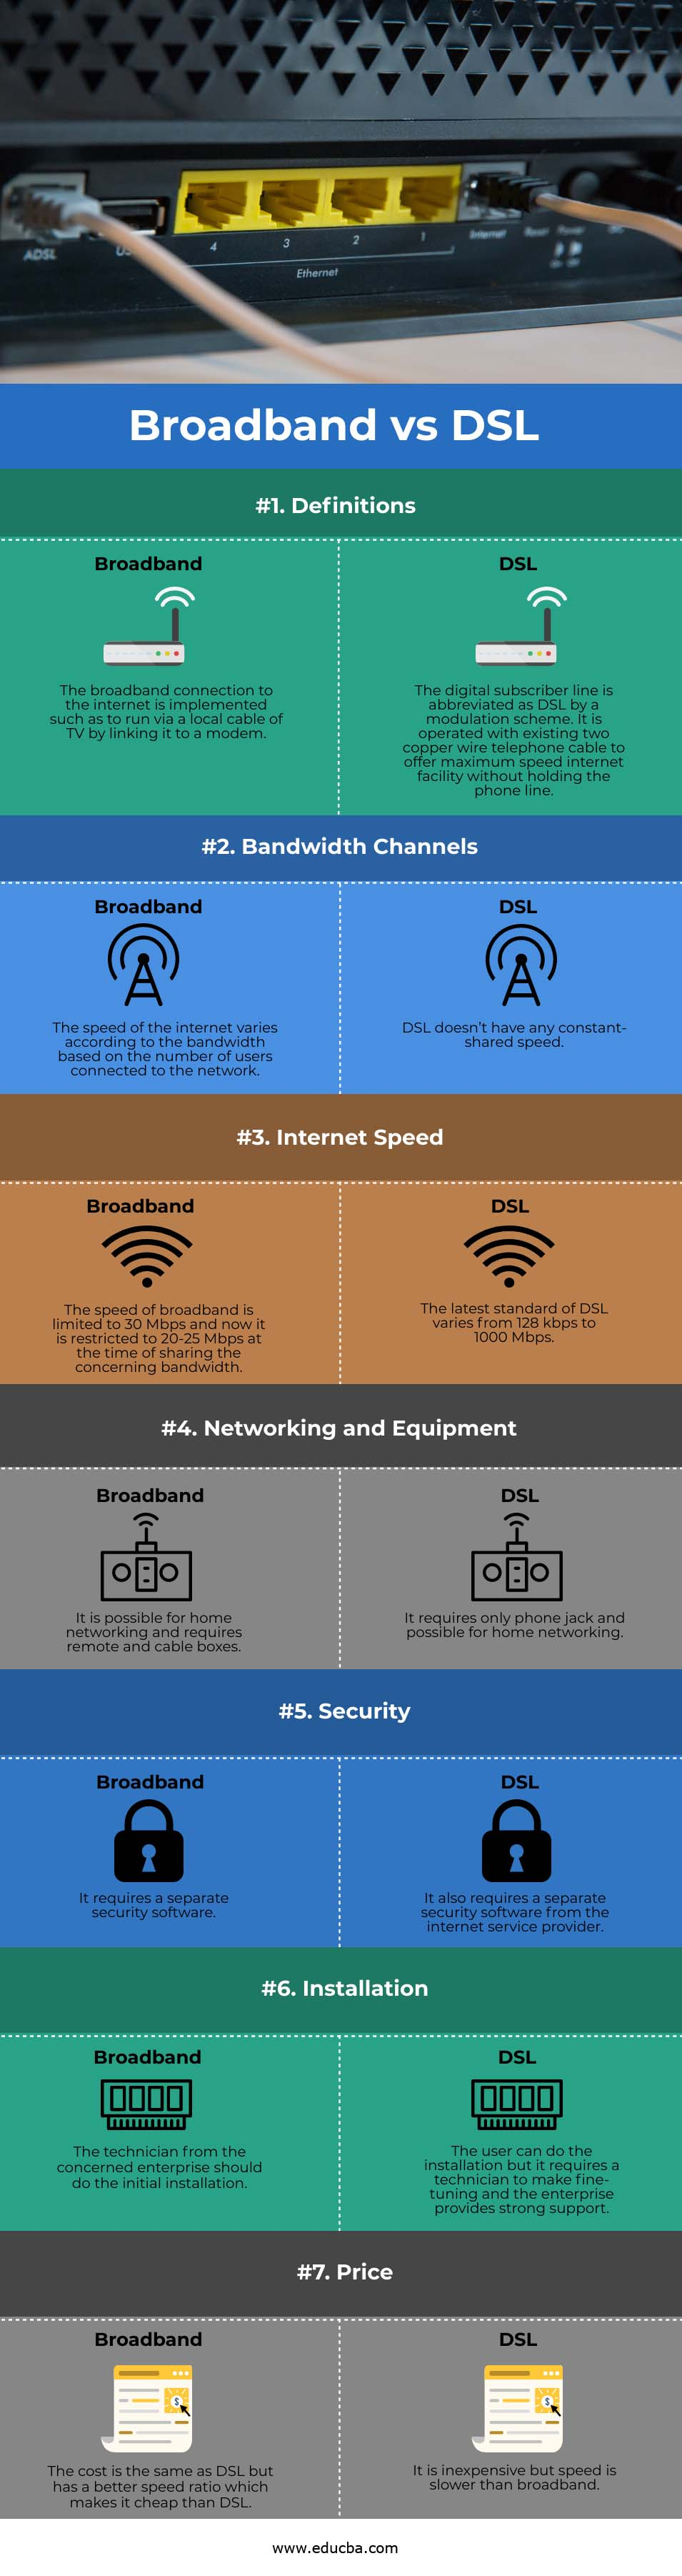 broadband-vs-dsl info